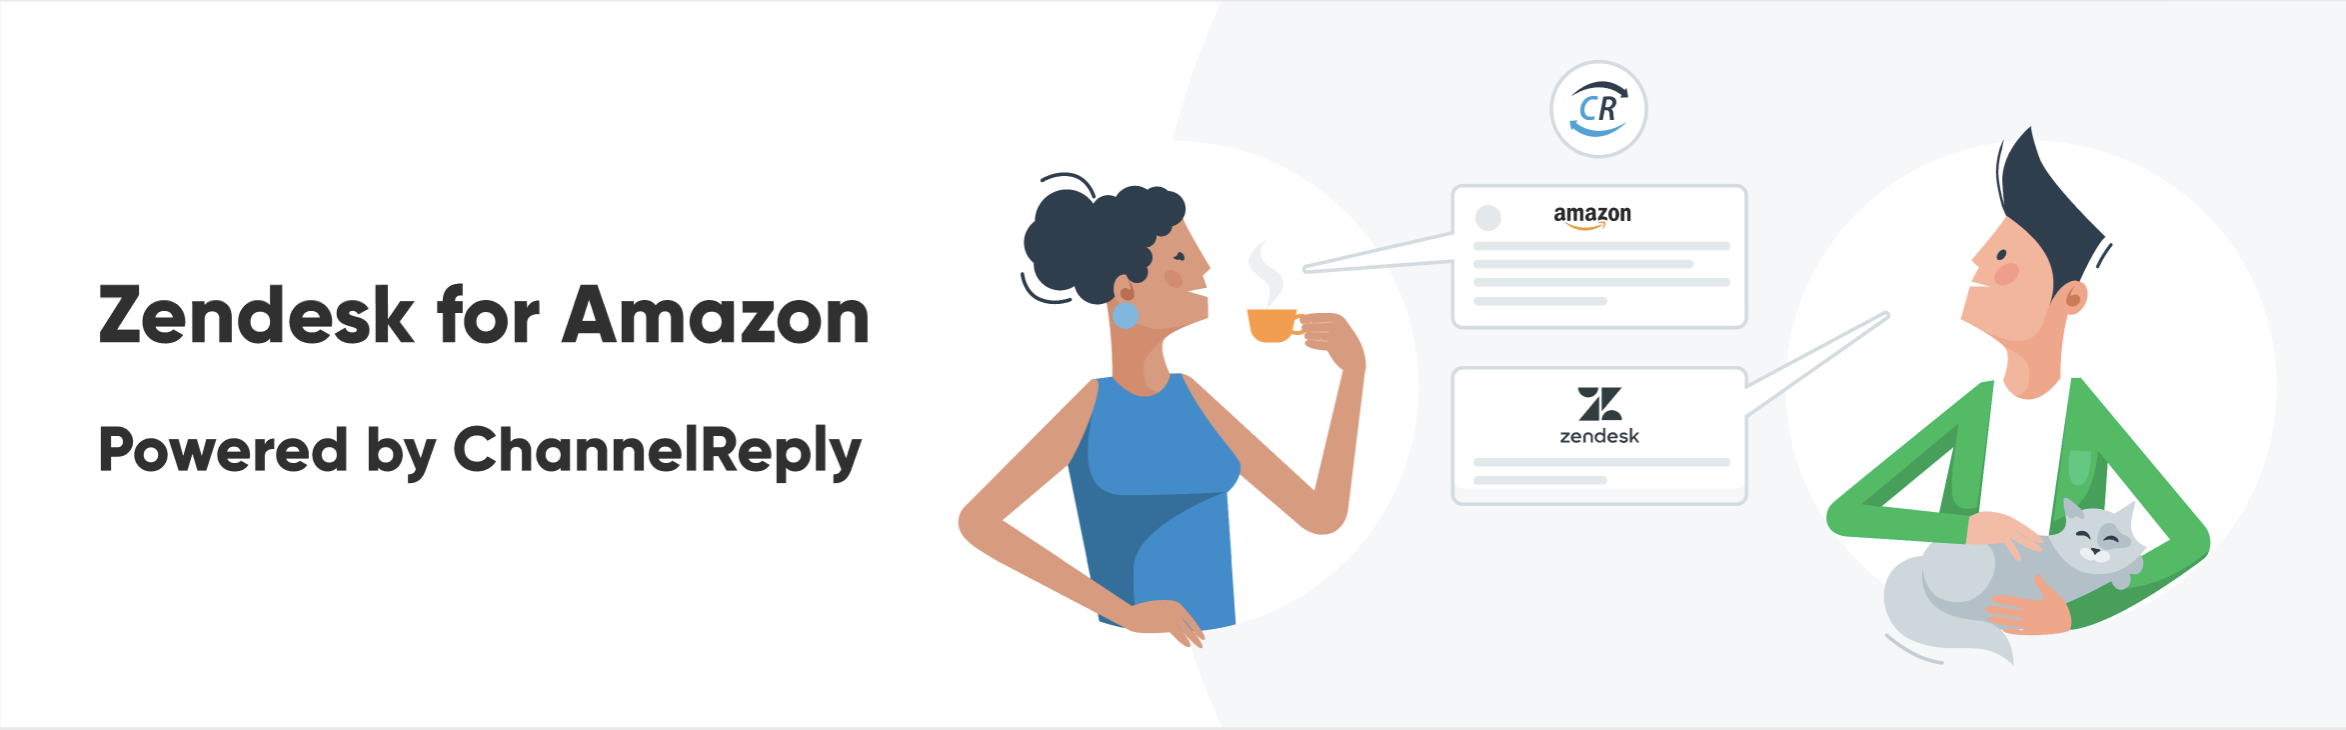 Zendesk for Amazon Powered by ChannelReply Banner